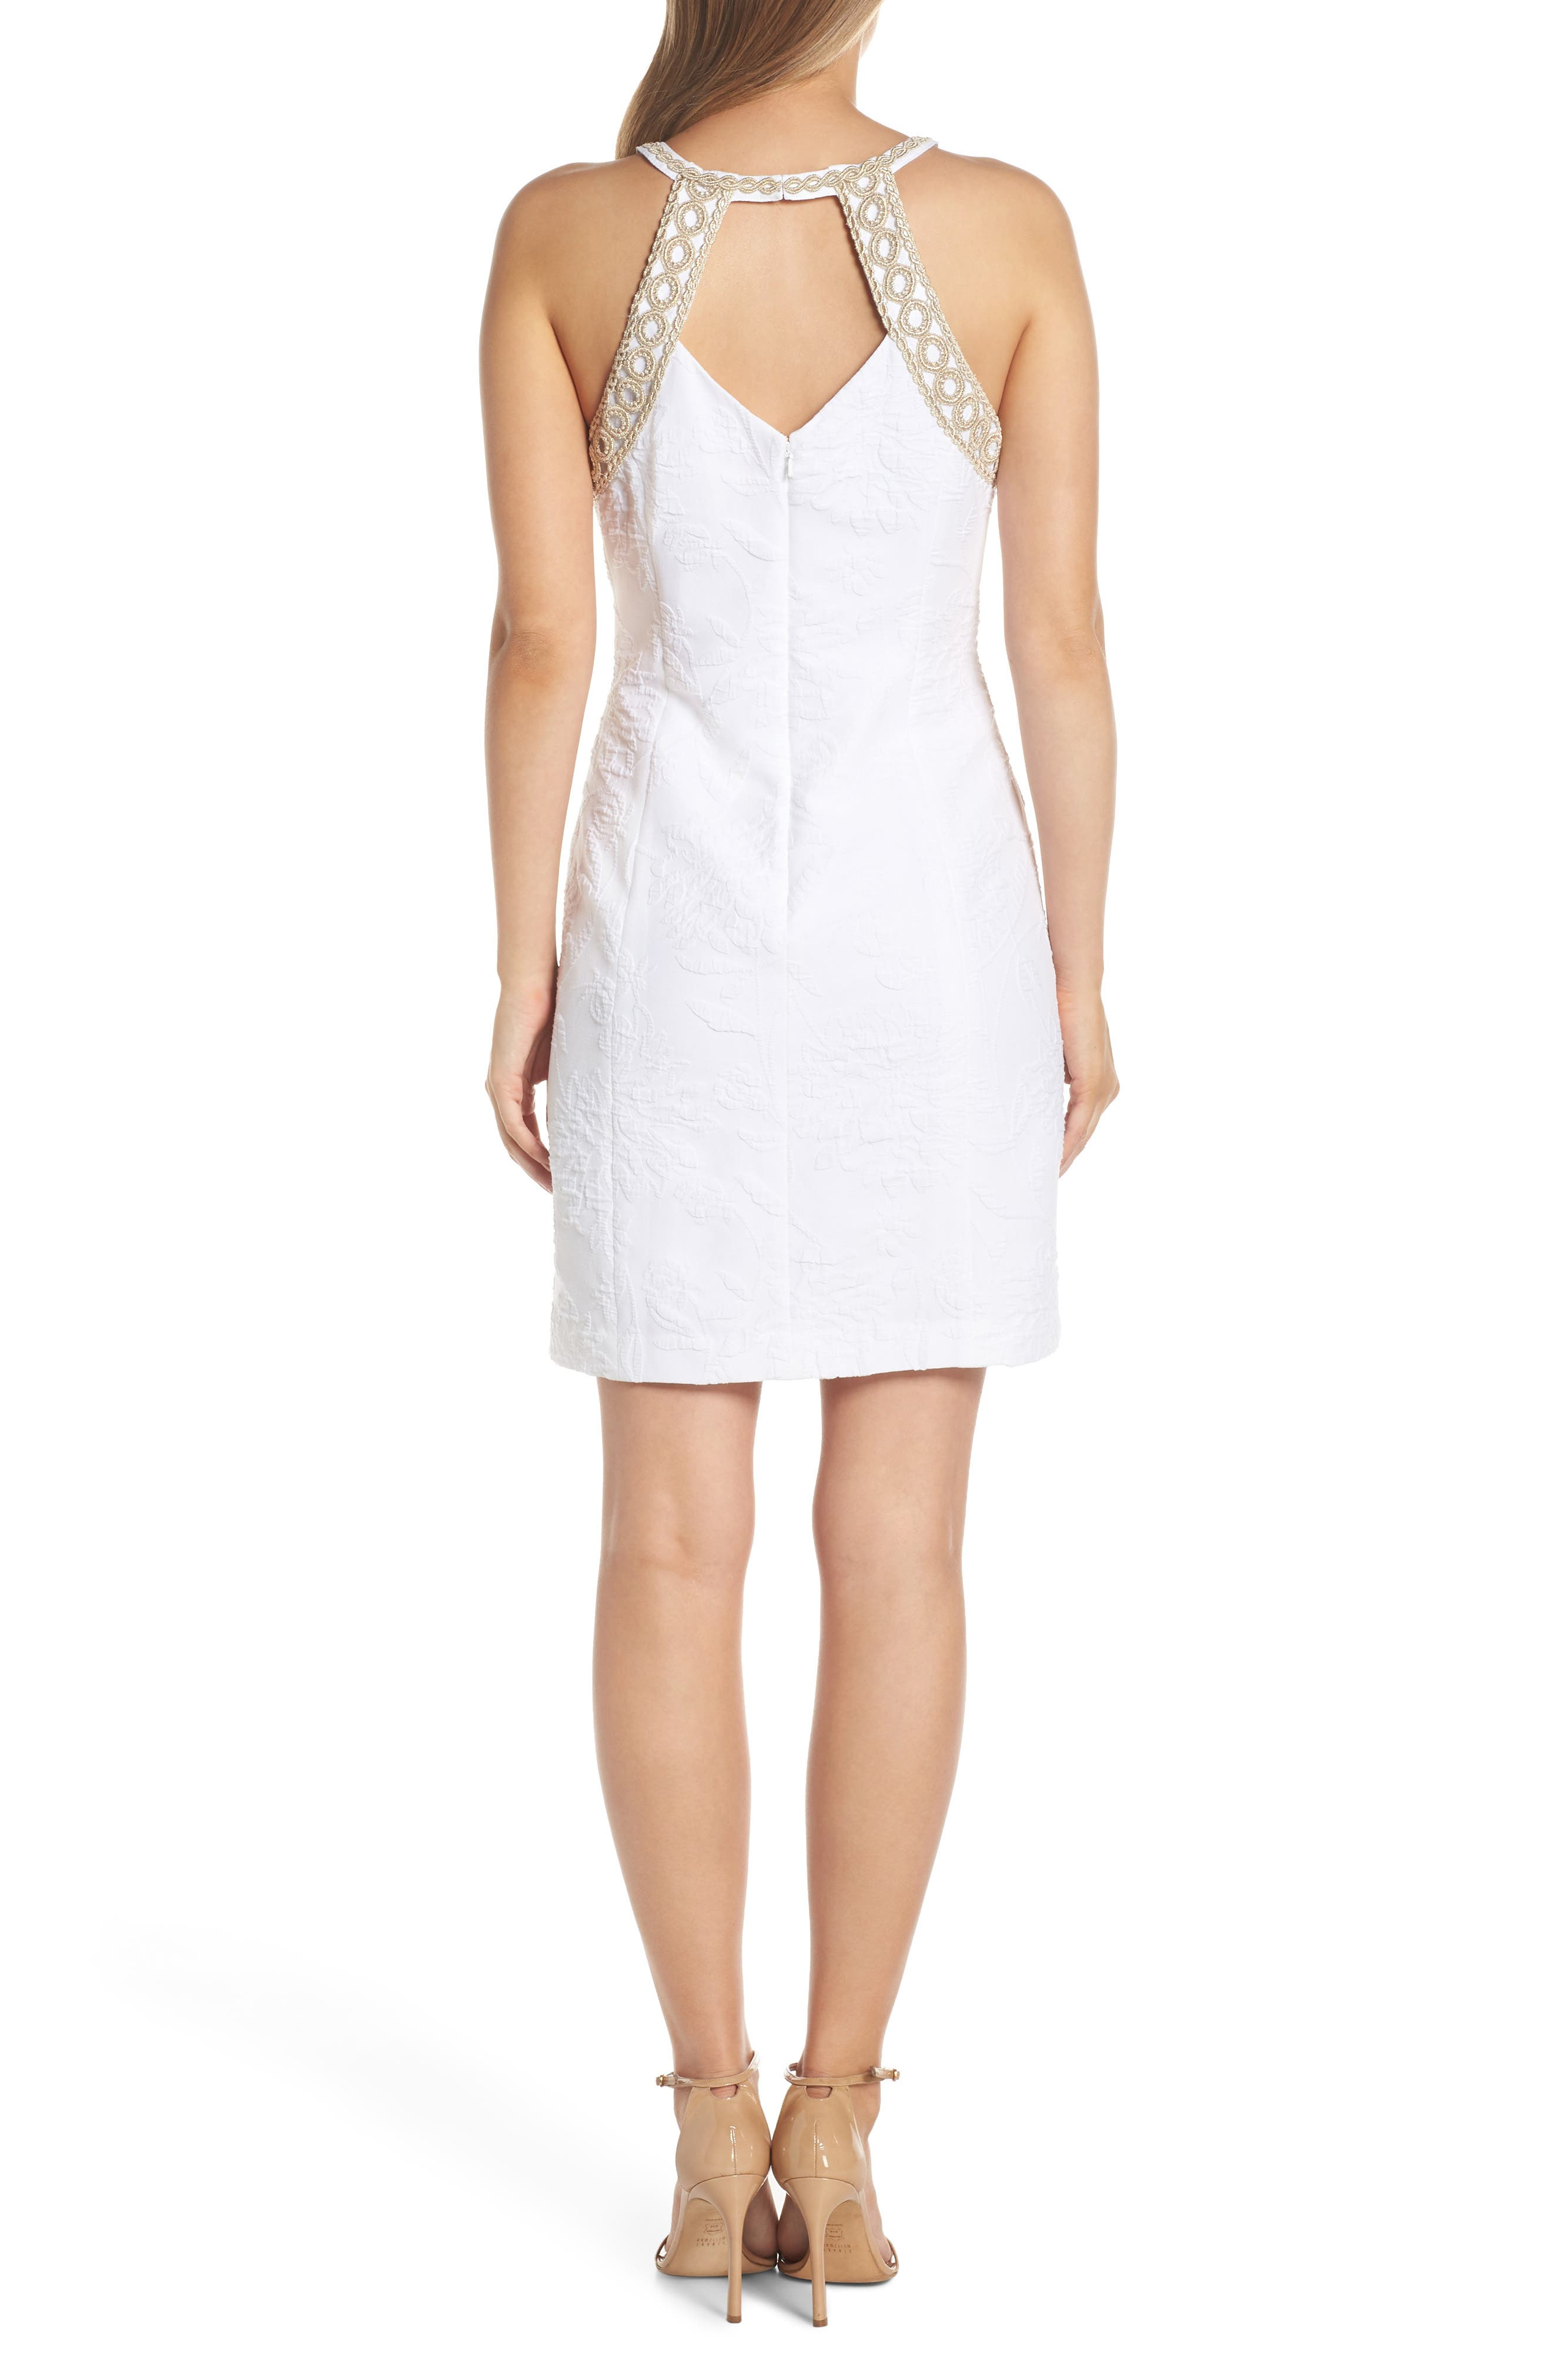 Pearl Stretch Shift Dress,                             Alternate thumbnail 2, color,                             RESORT WHITE CALIENTE PU